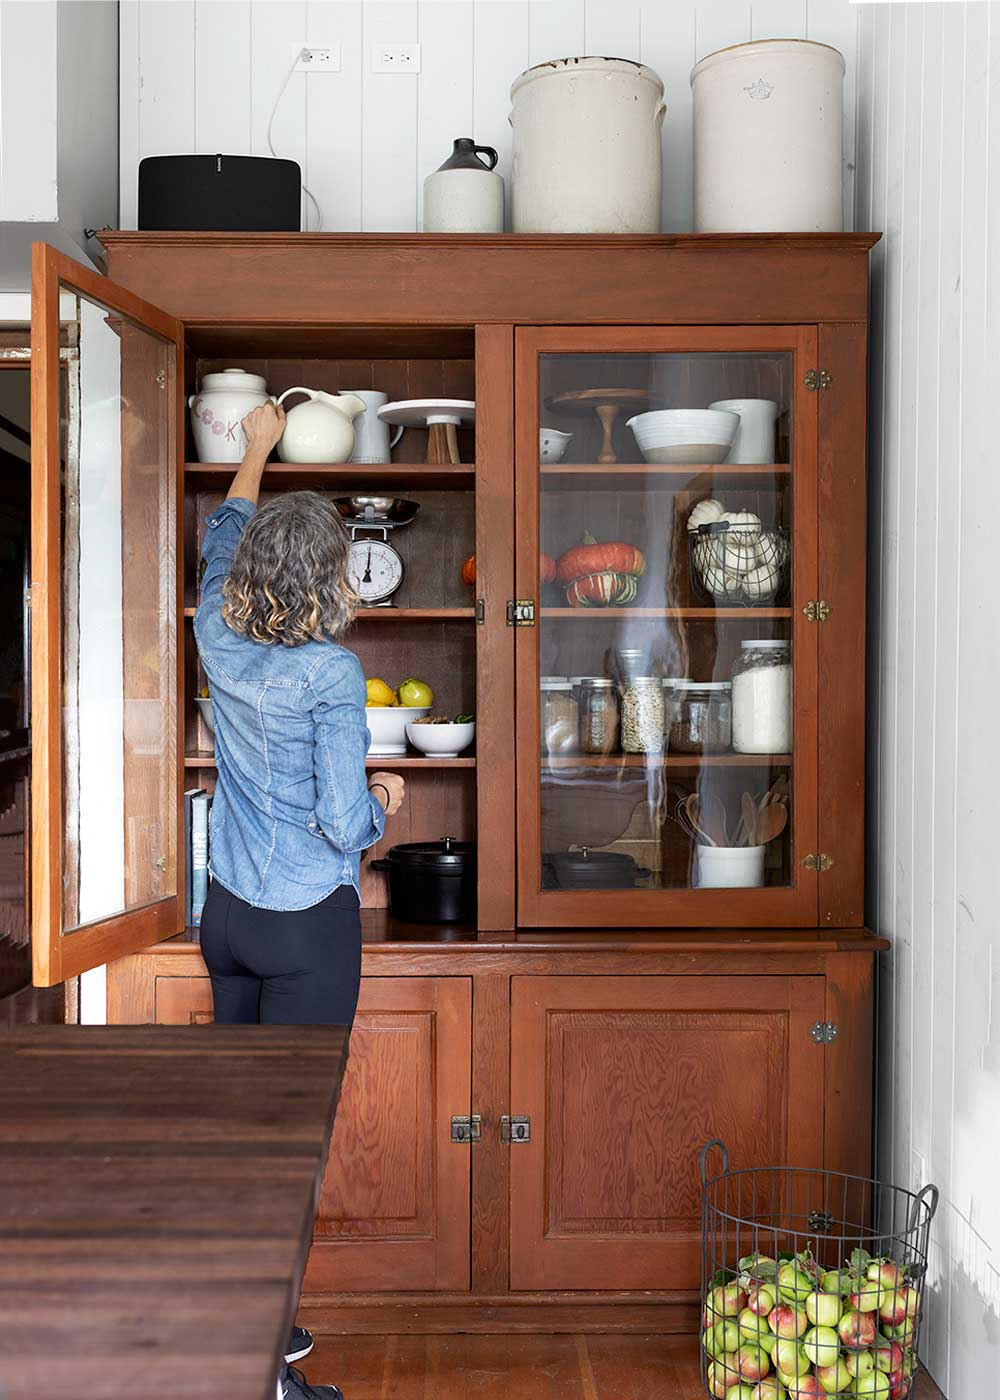 The Grit and Polish Hutch pantry